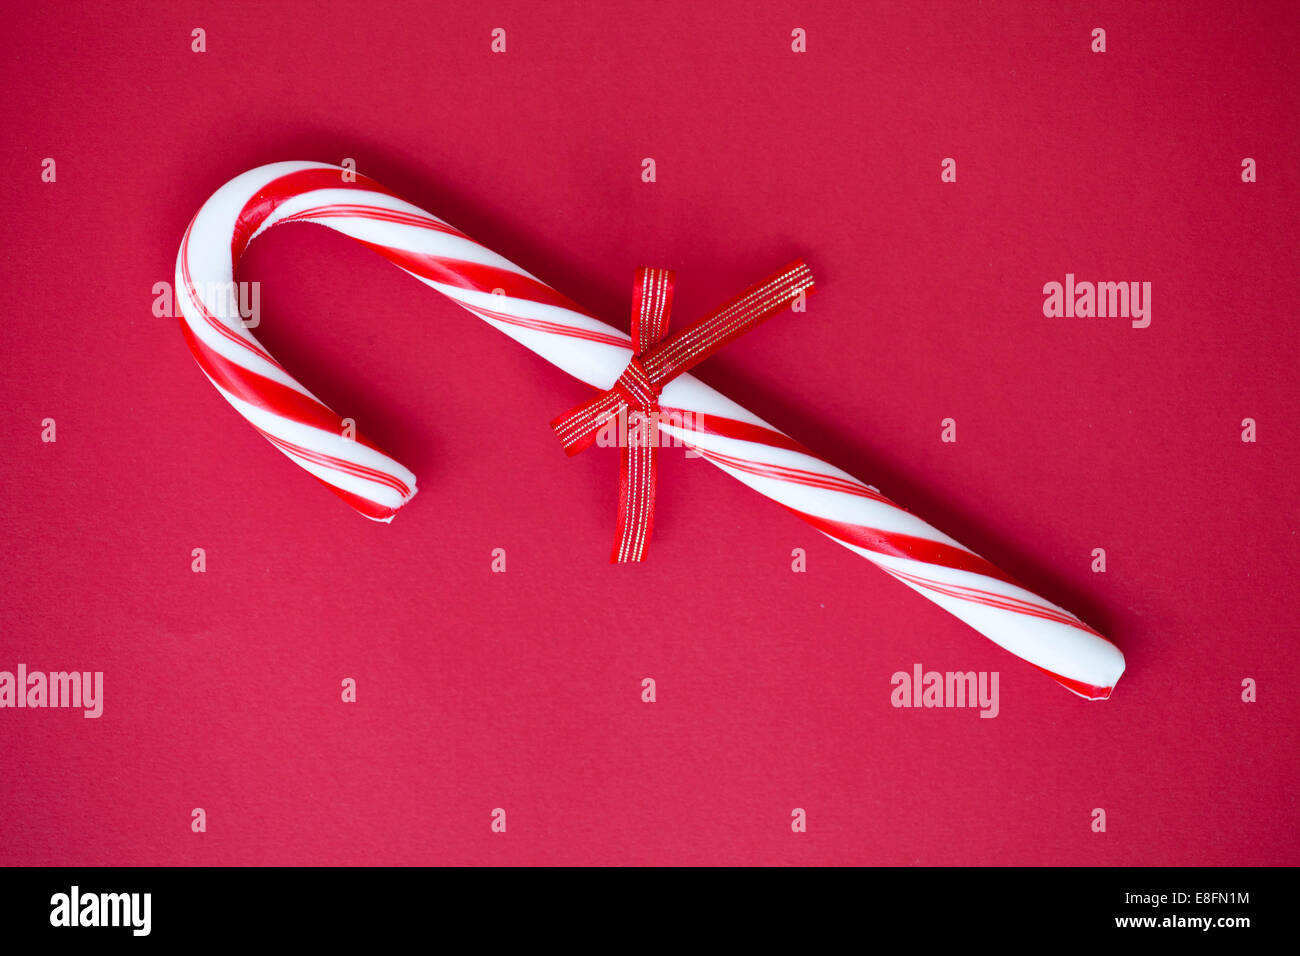 Candy Cane with a tied bow - Stock Image